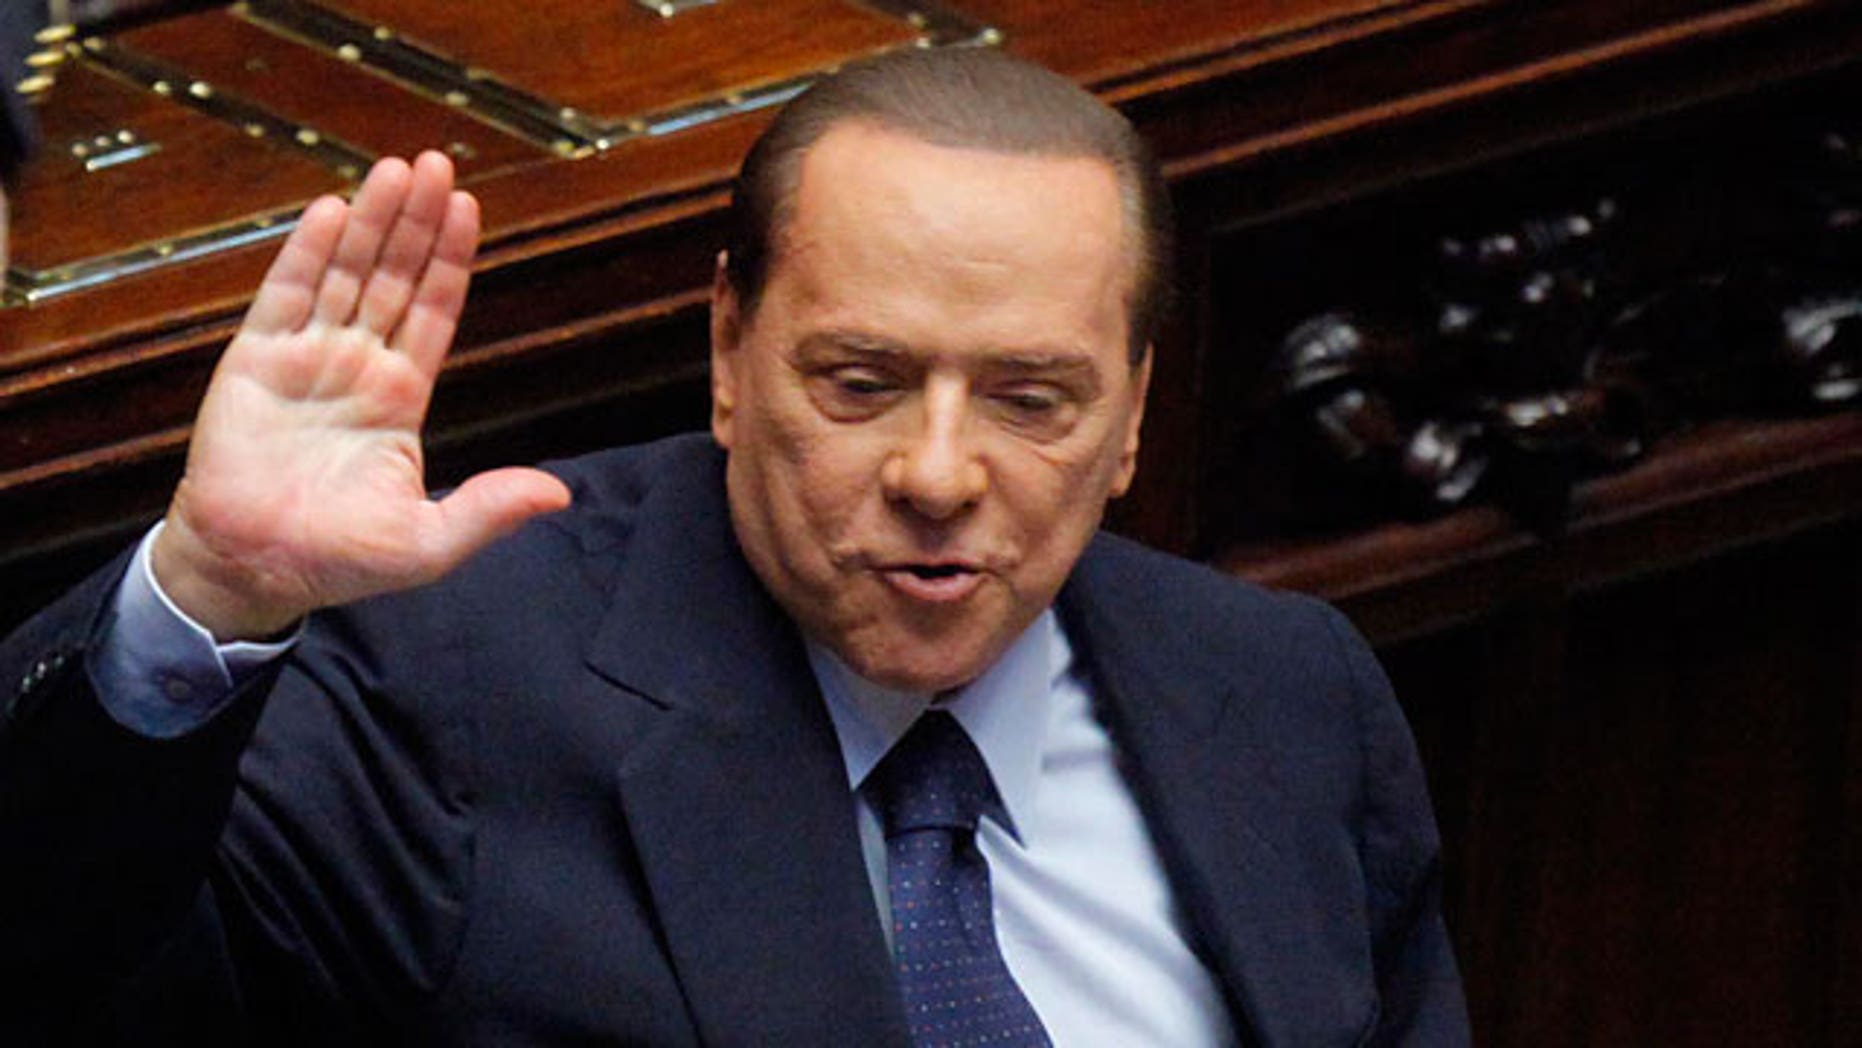 Italian Premier Silvio Berlusconi gestures in the Lower Chamber, in Rome, Friday, Oct. 14, 2011.